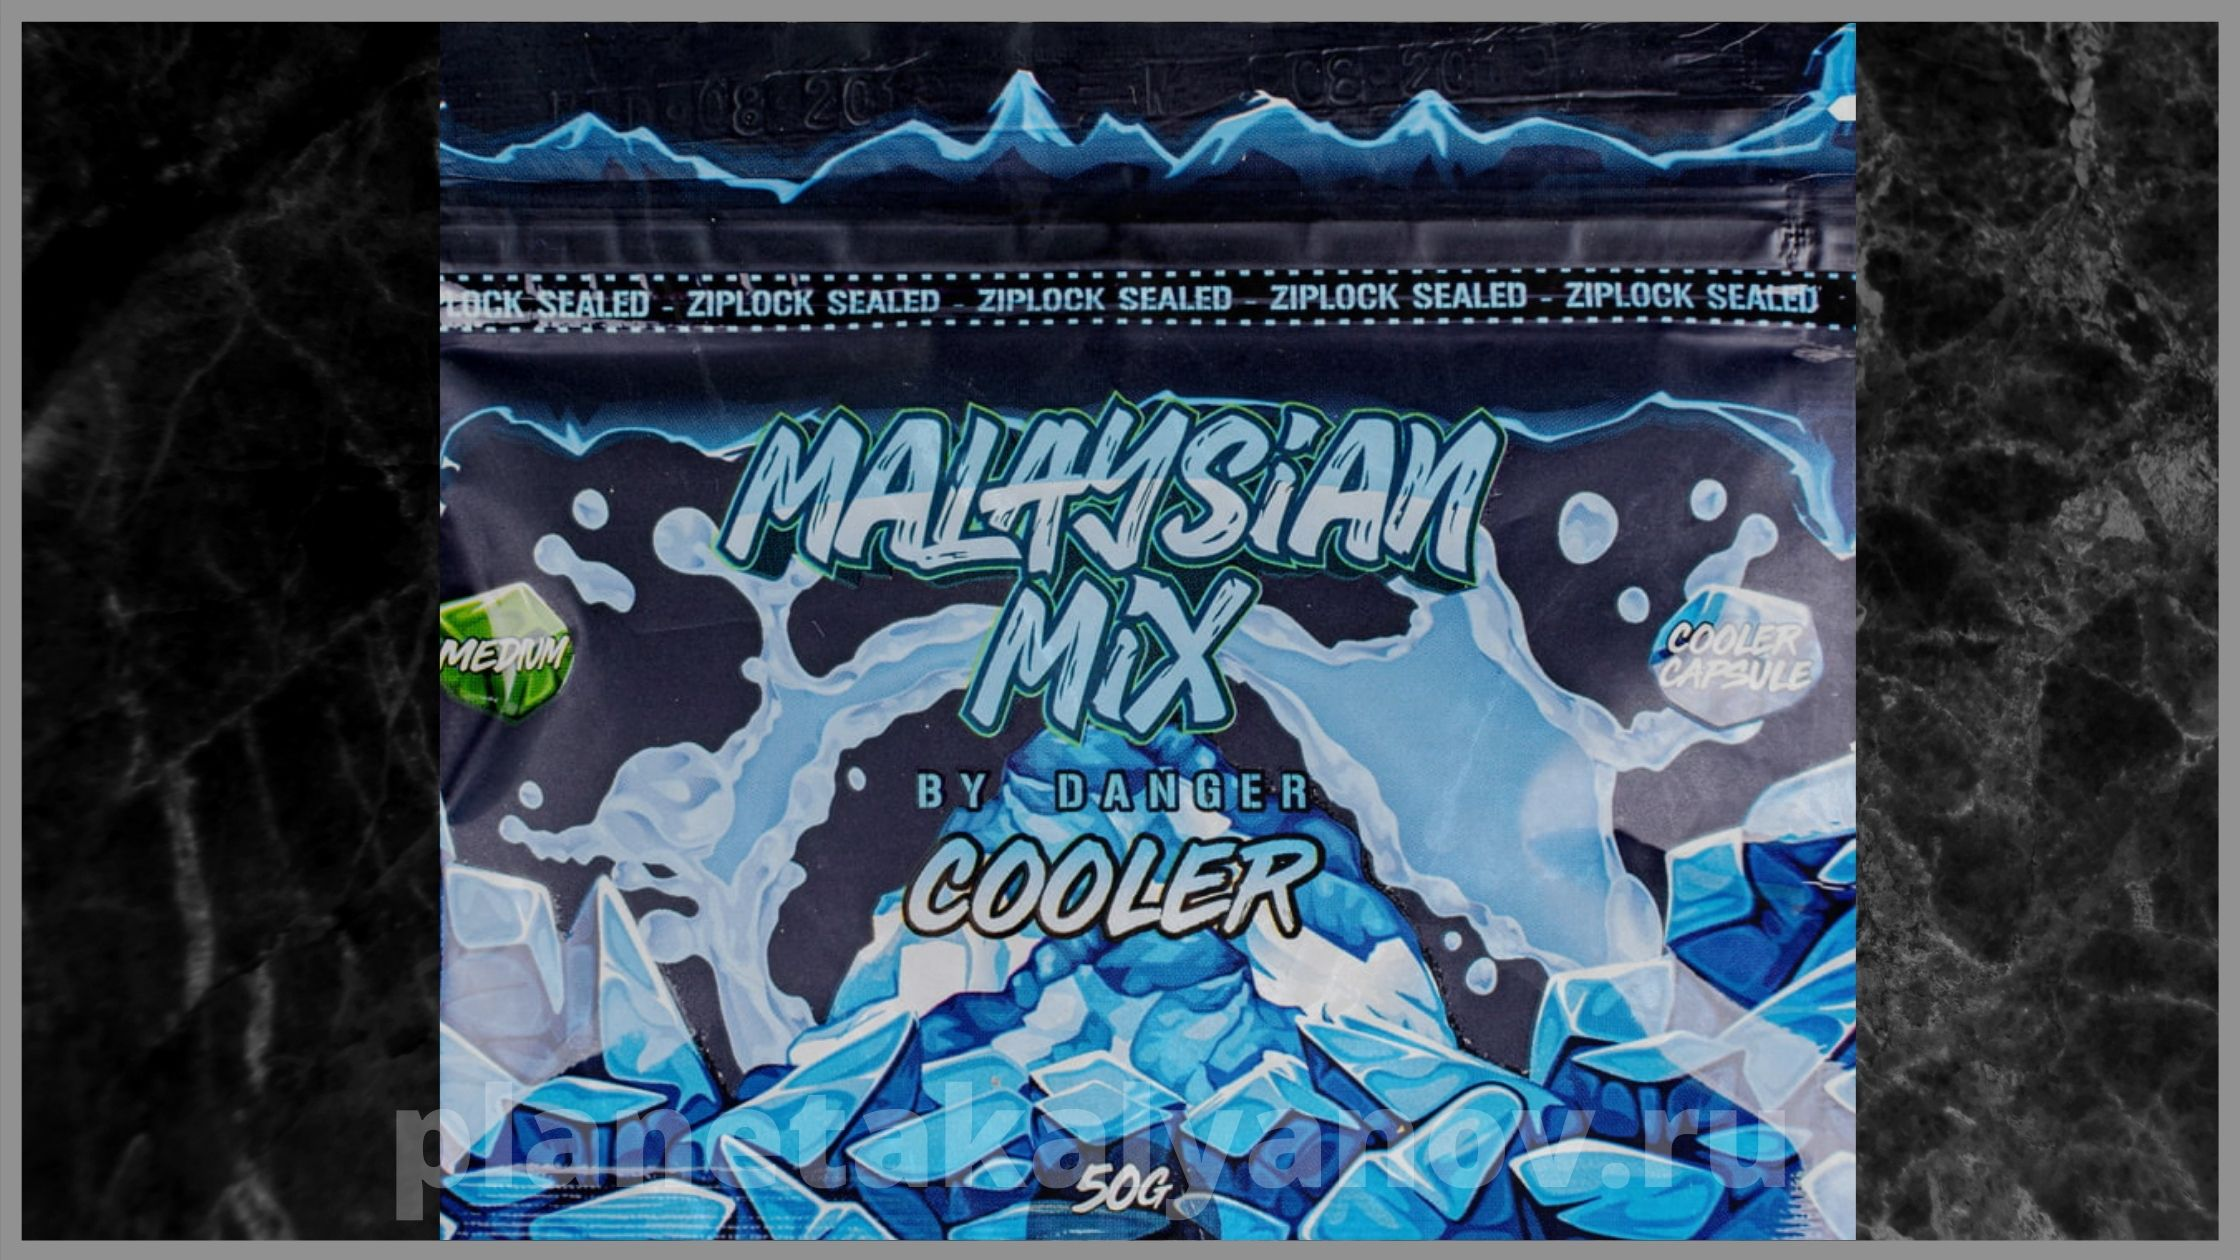 Malaysian Mix by Danger Cooler